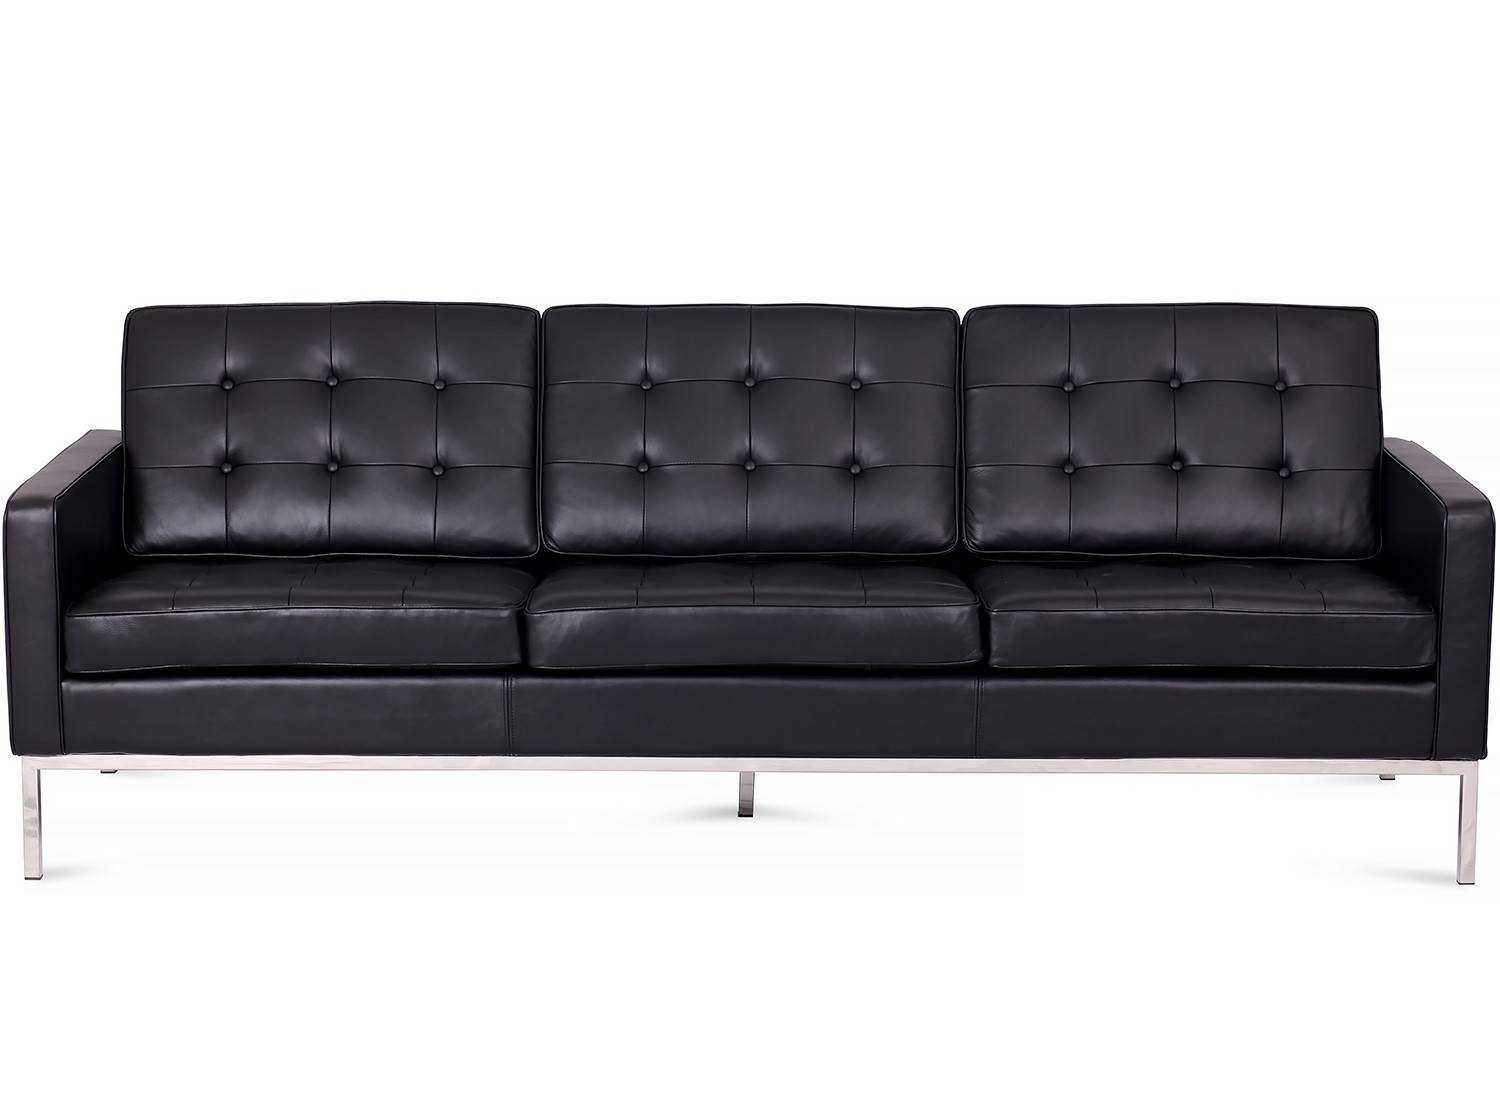 Sofas Center : Florence Knoll Sofa Comfort Chaise Reproduction pertaining to Florence Knoll Leather Sofas (Image 21 of 25)